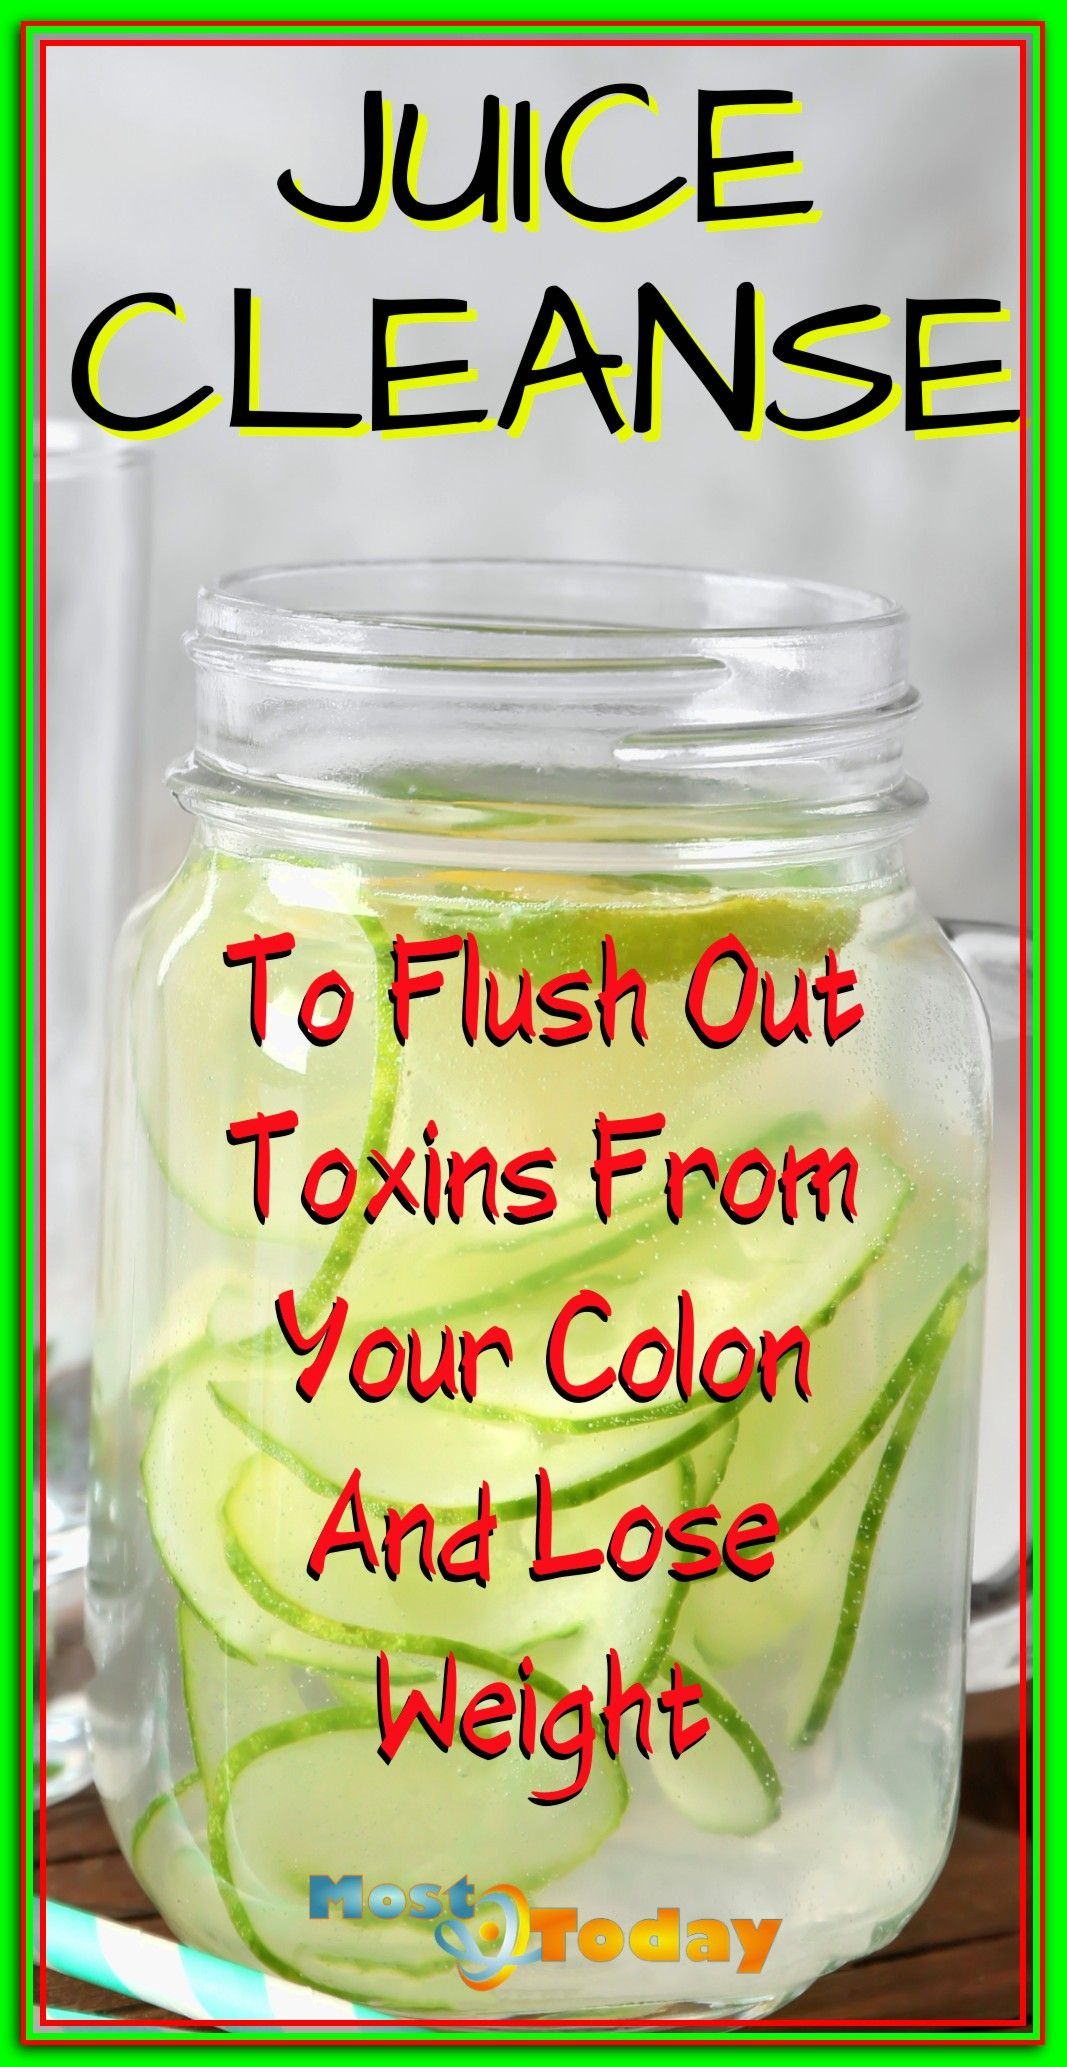 Juice Cleanse To Flush Out Toxins From Your Colon And Lose Weight